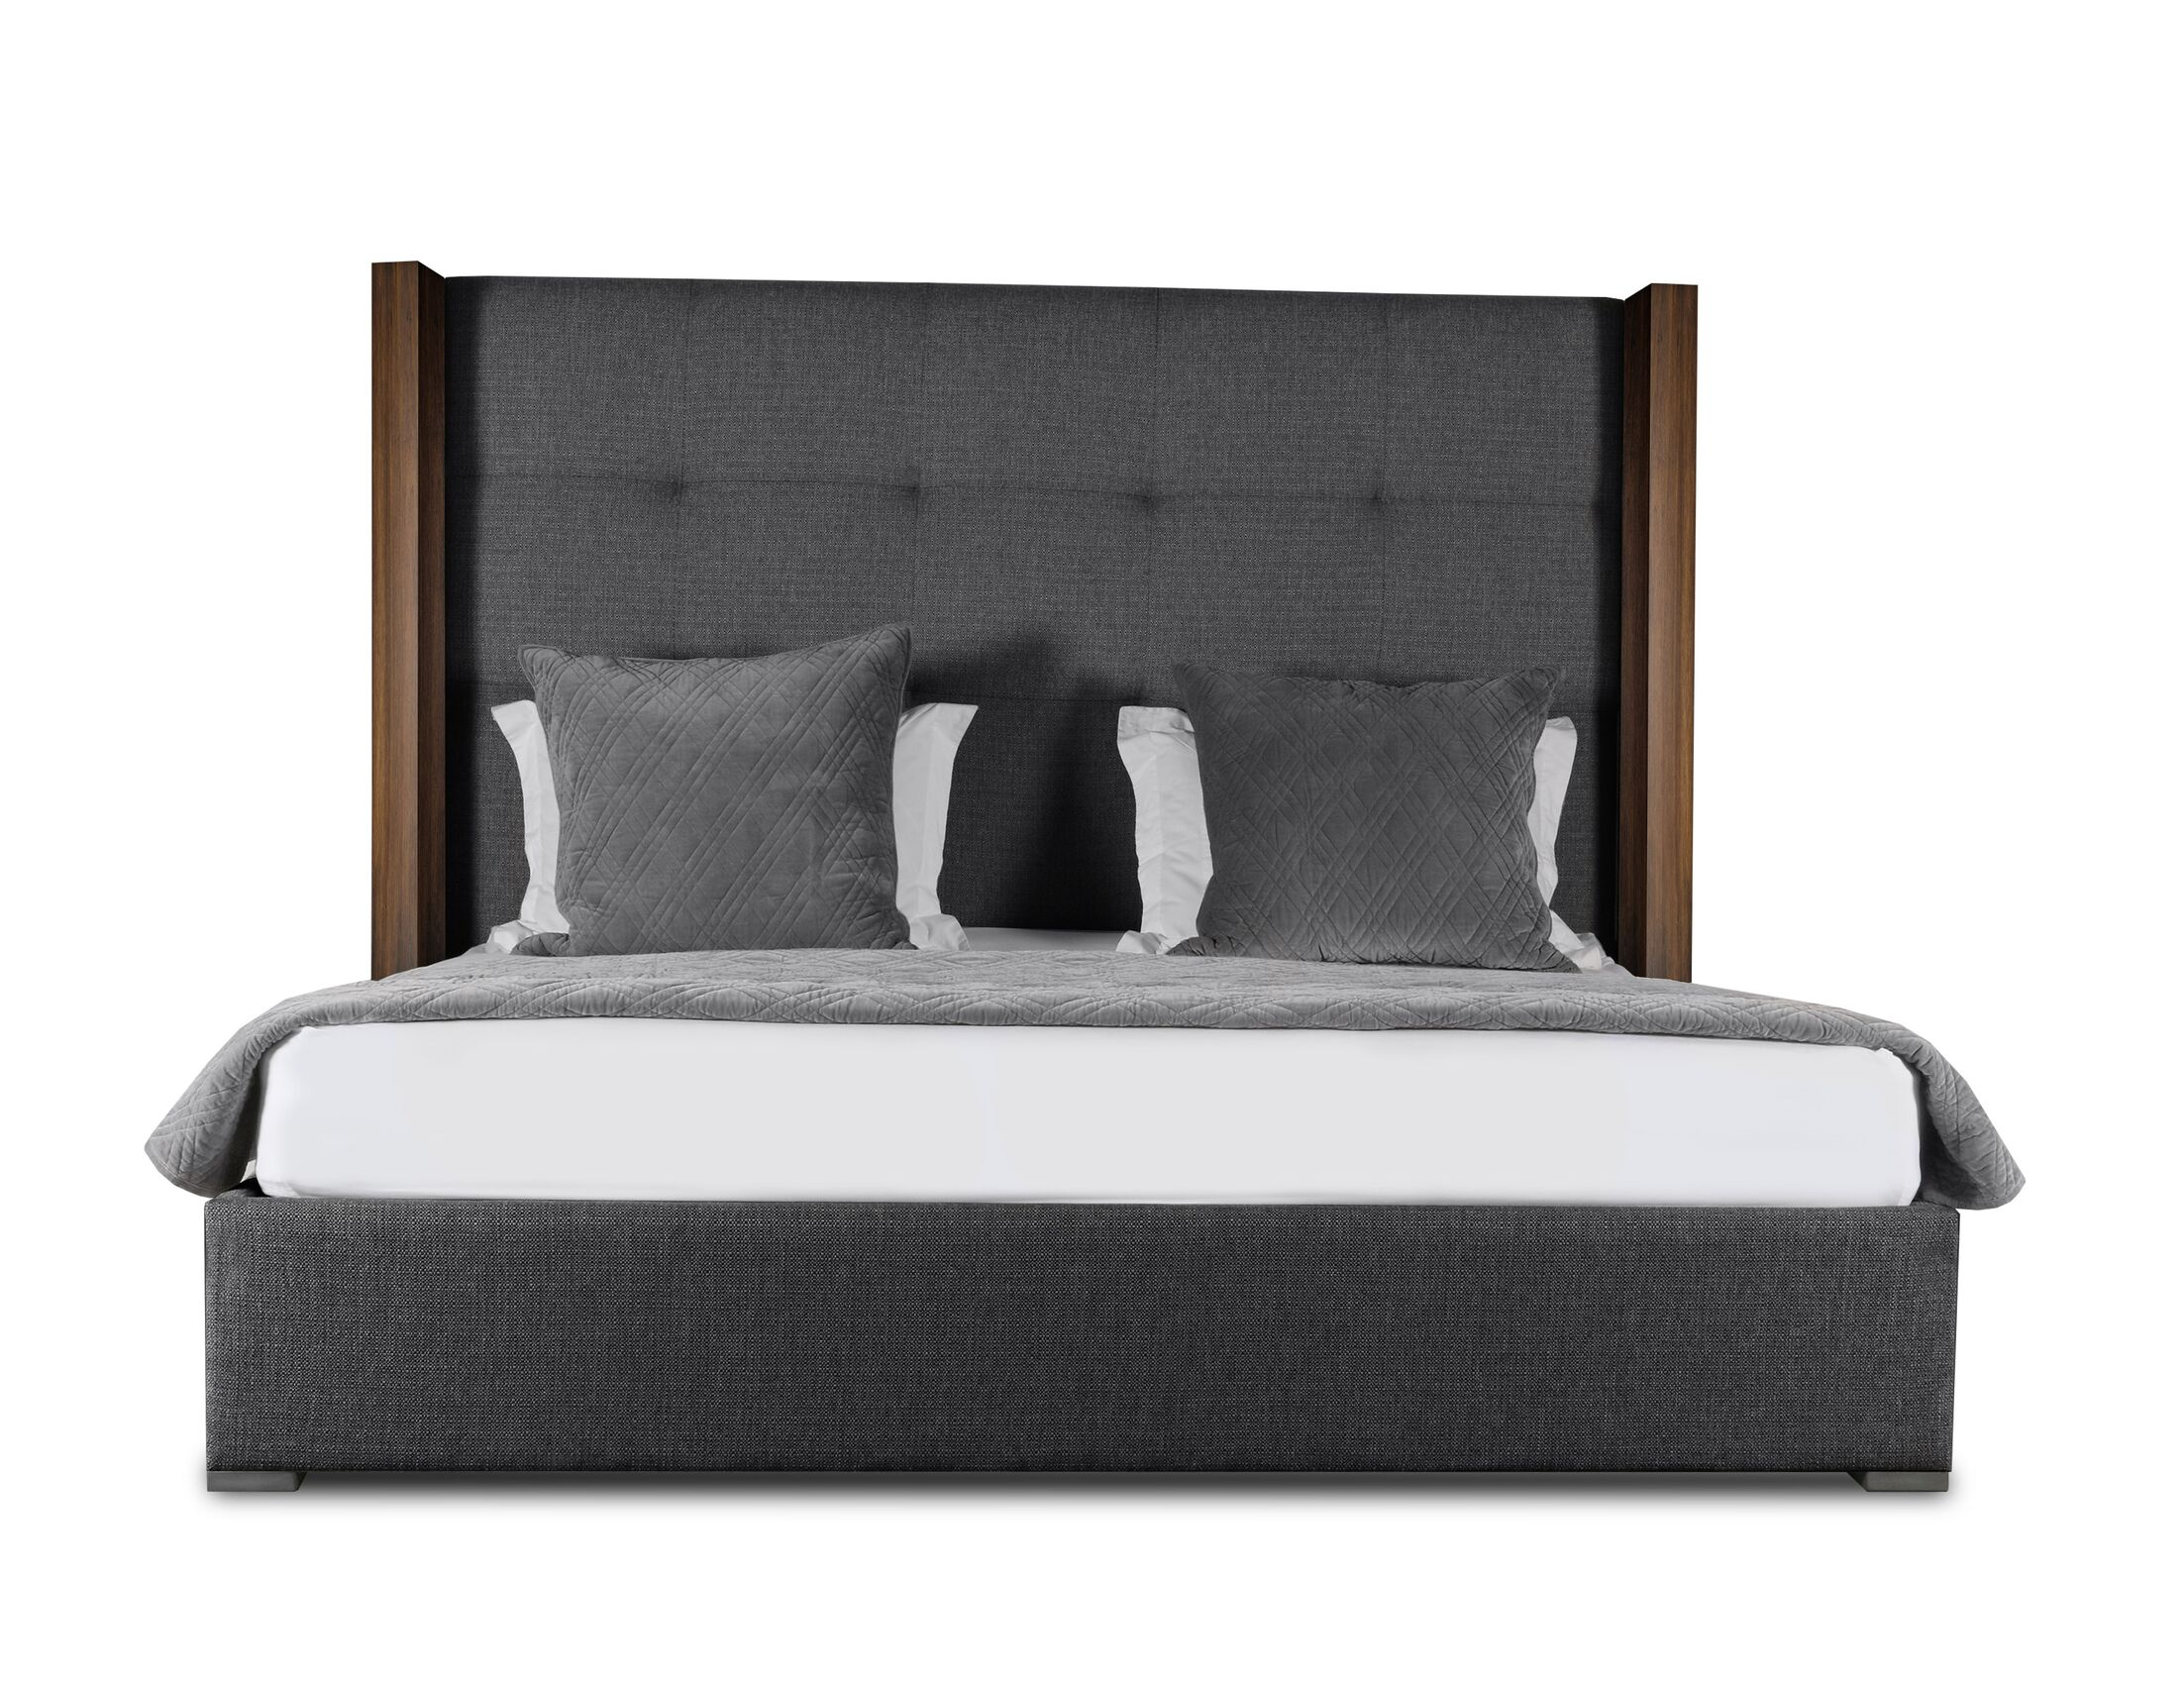 Harborcreek Button Tufted Upholstered Platform Bed Color: Charcoal, Size: High Height King